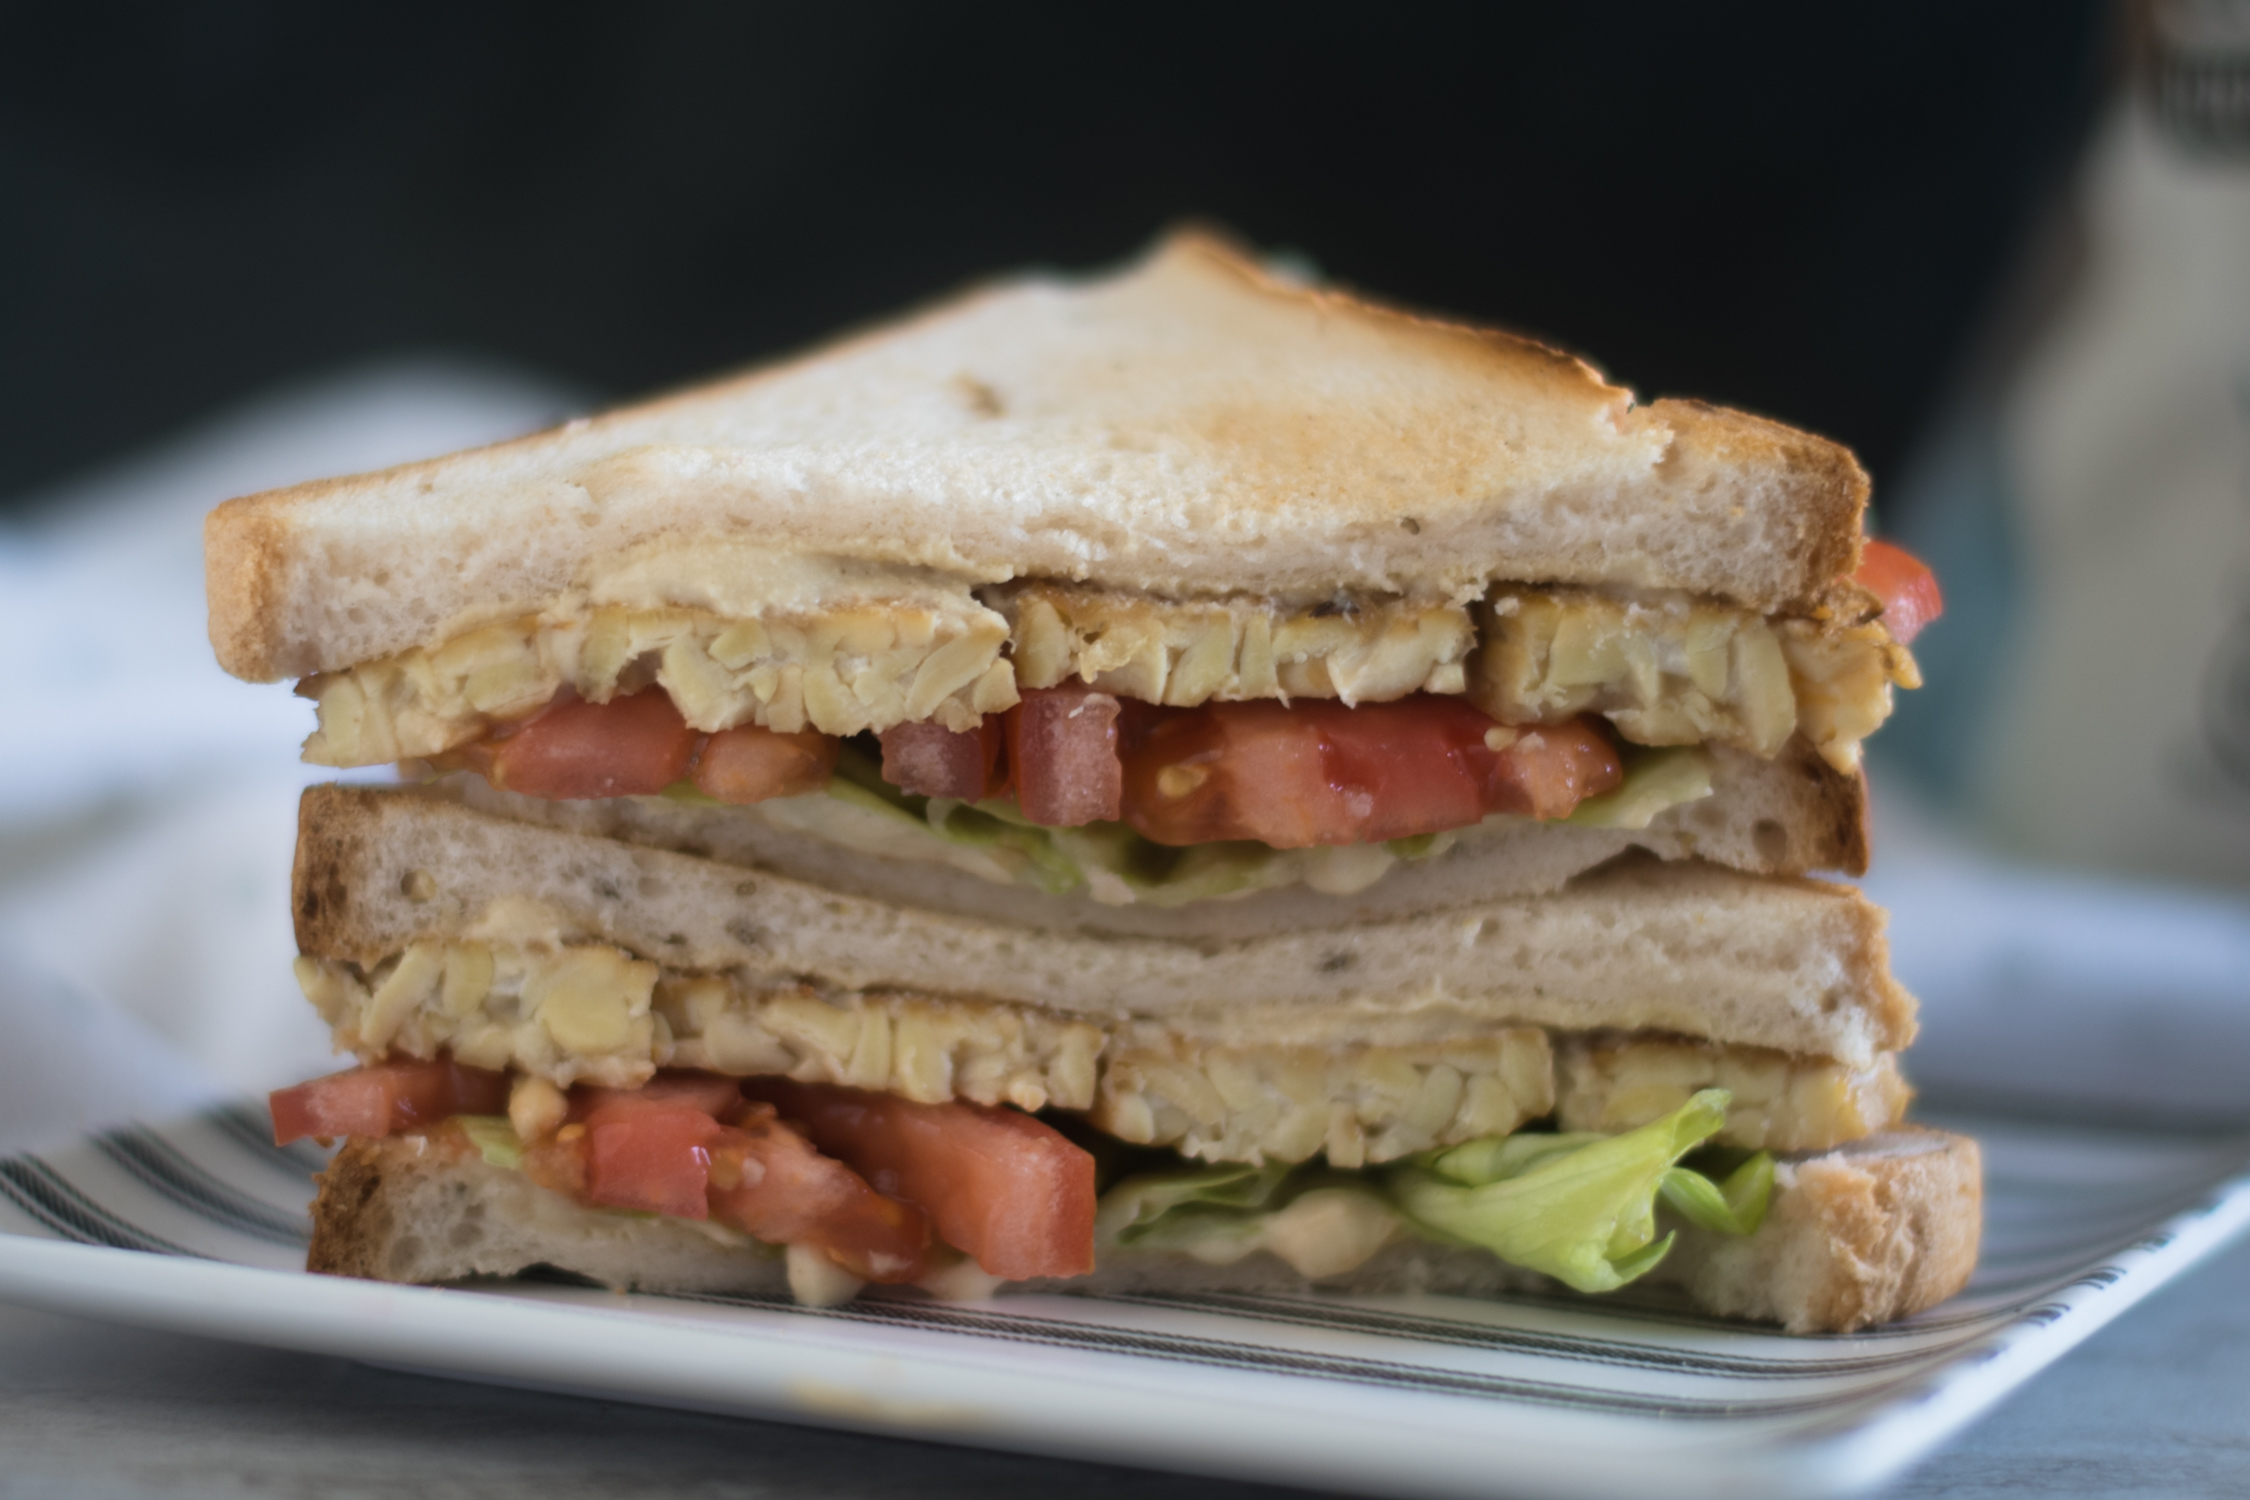 Vegan Hummus BLT is a healthy, glutenf-free sandwich.